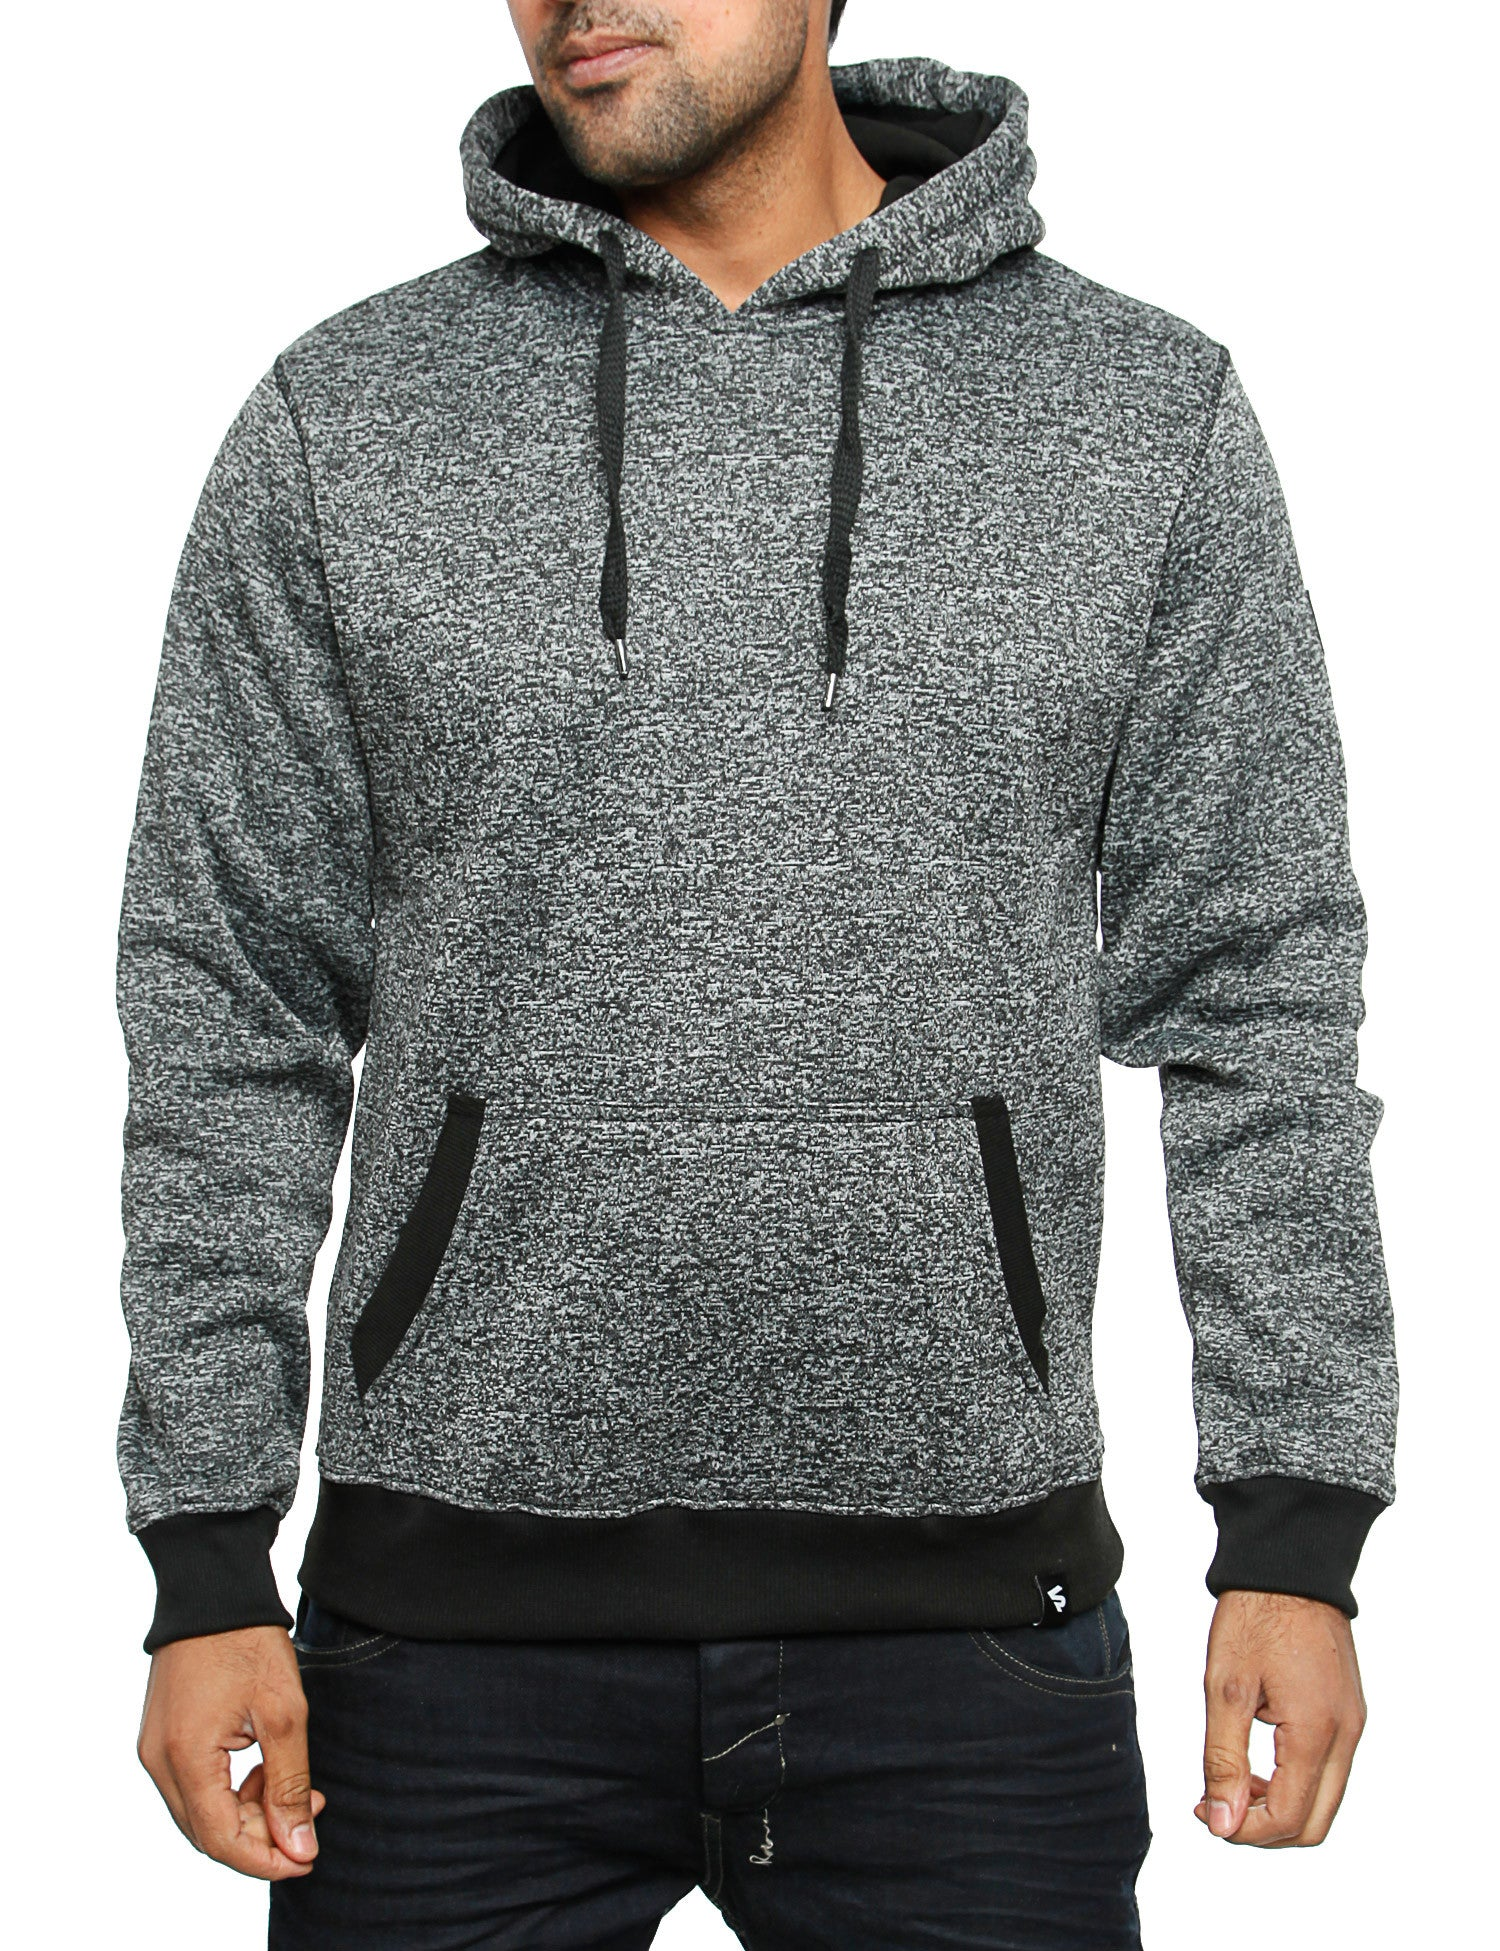 Southpole Hoody 15321-1526 Marled Black